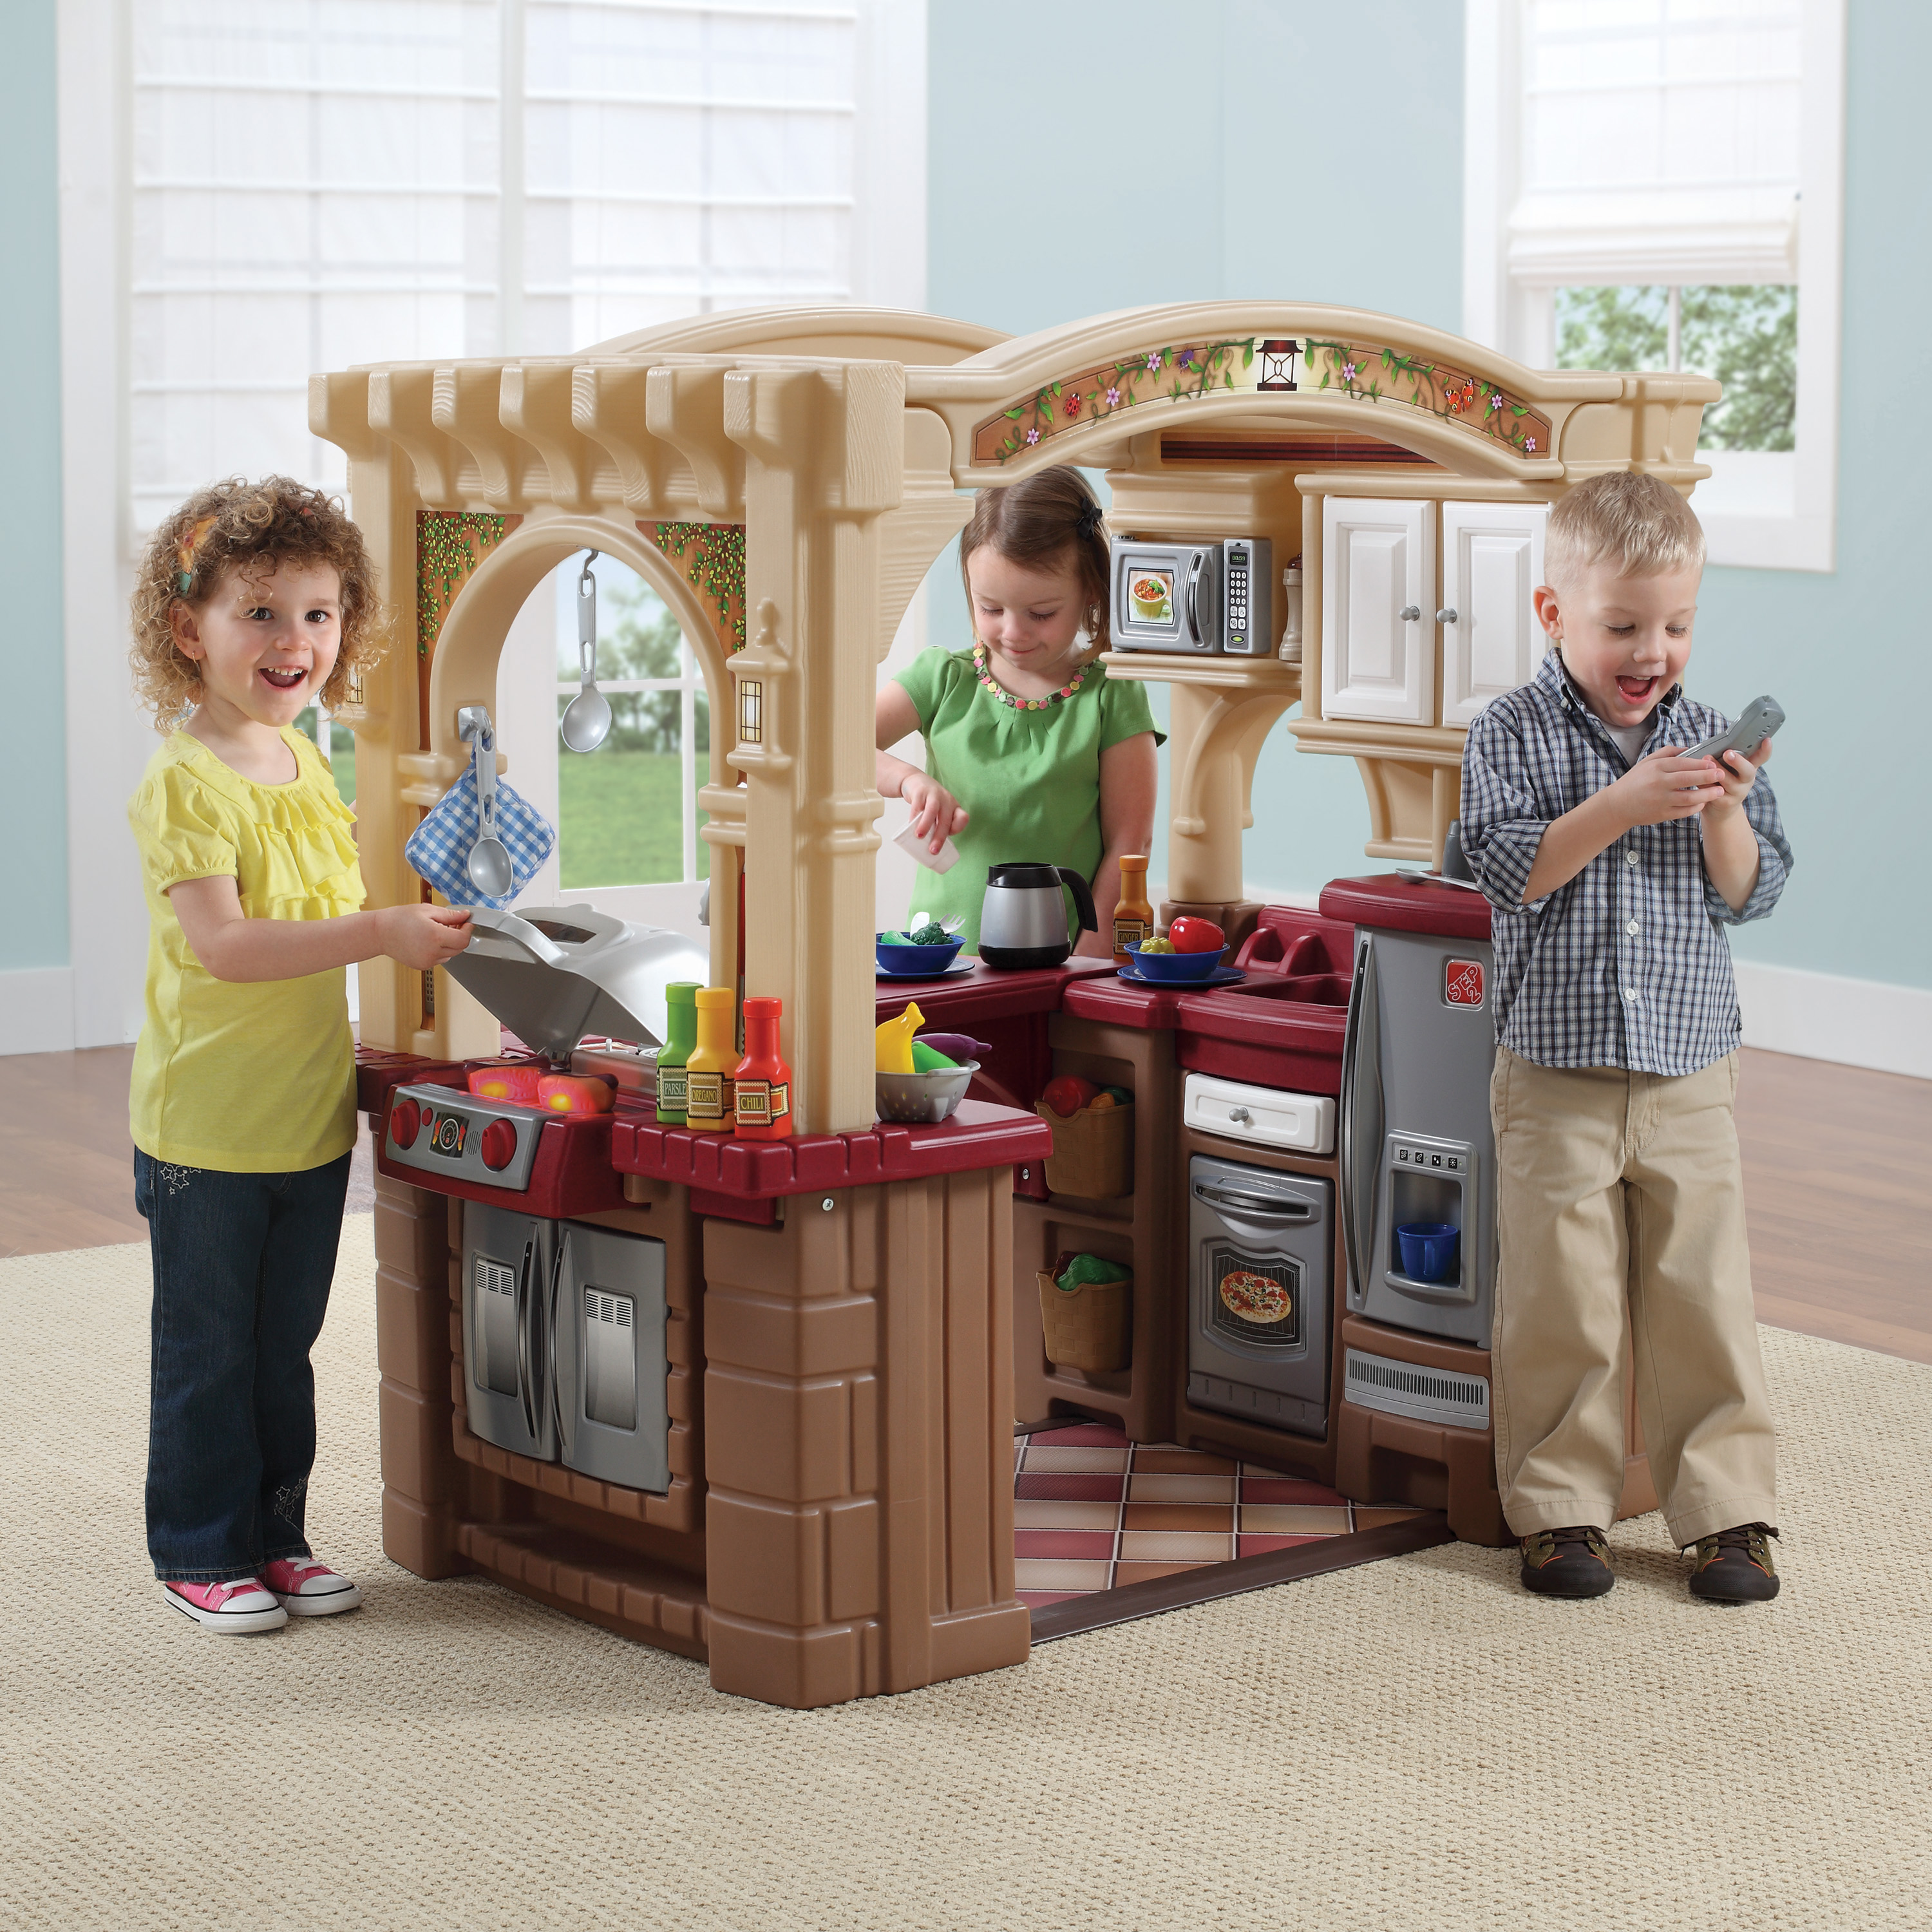 Step2 Grand Walk-In Play Kitchen & Grill with 103 Piece Food Accessory Set  - Walmart.com